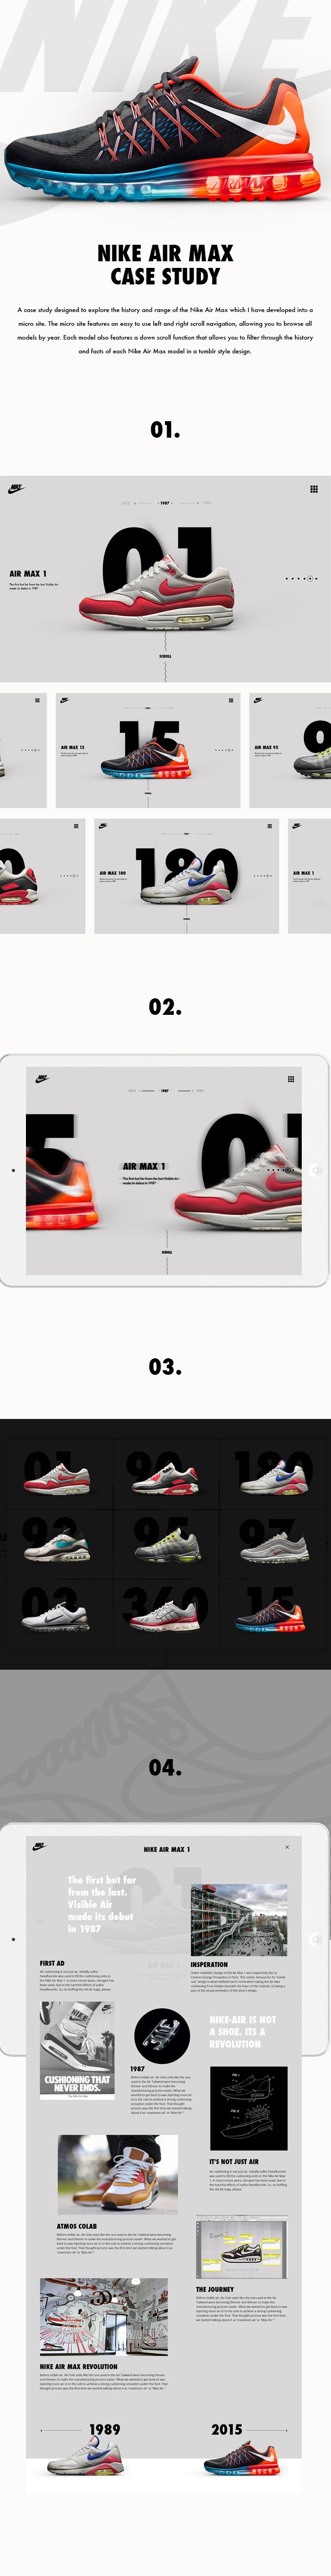 A case study designed to explore the history and range of the Nike Air Max which I have developed into a  micro site.